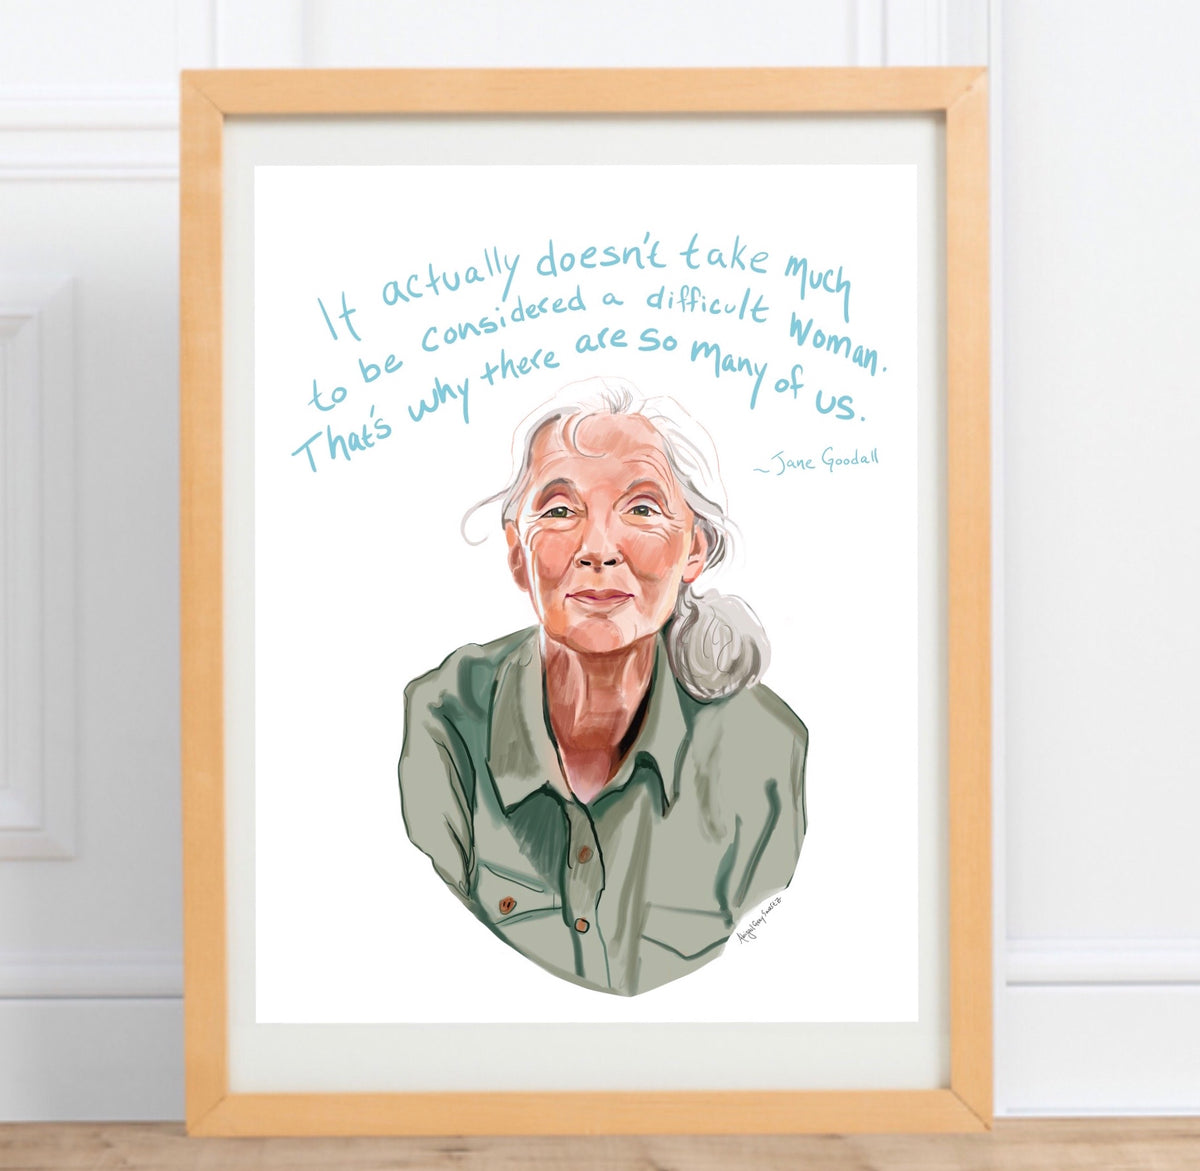 Jane Goodall Portrait and inspiring quote || Difficult woman quote -- Print